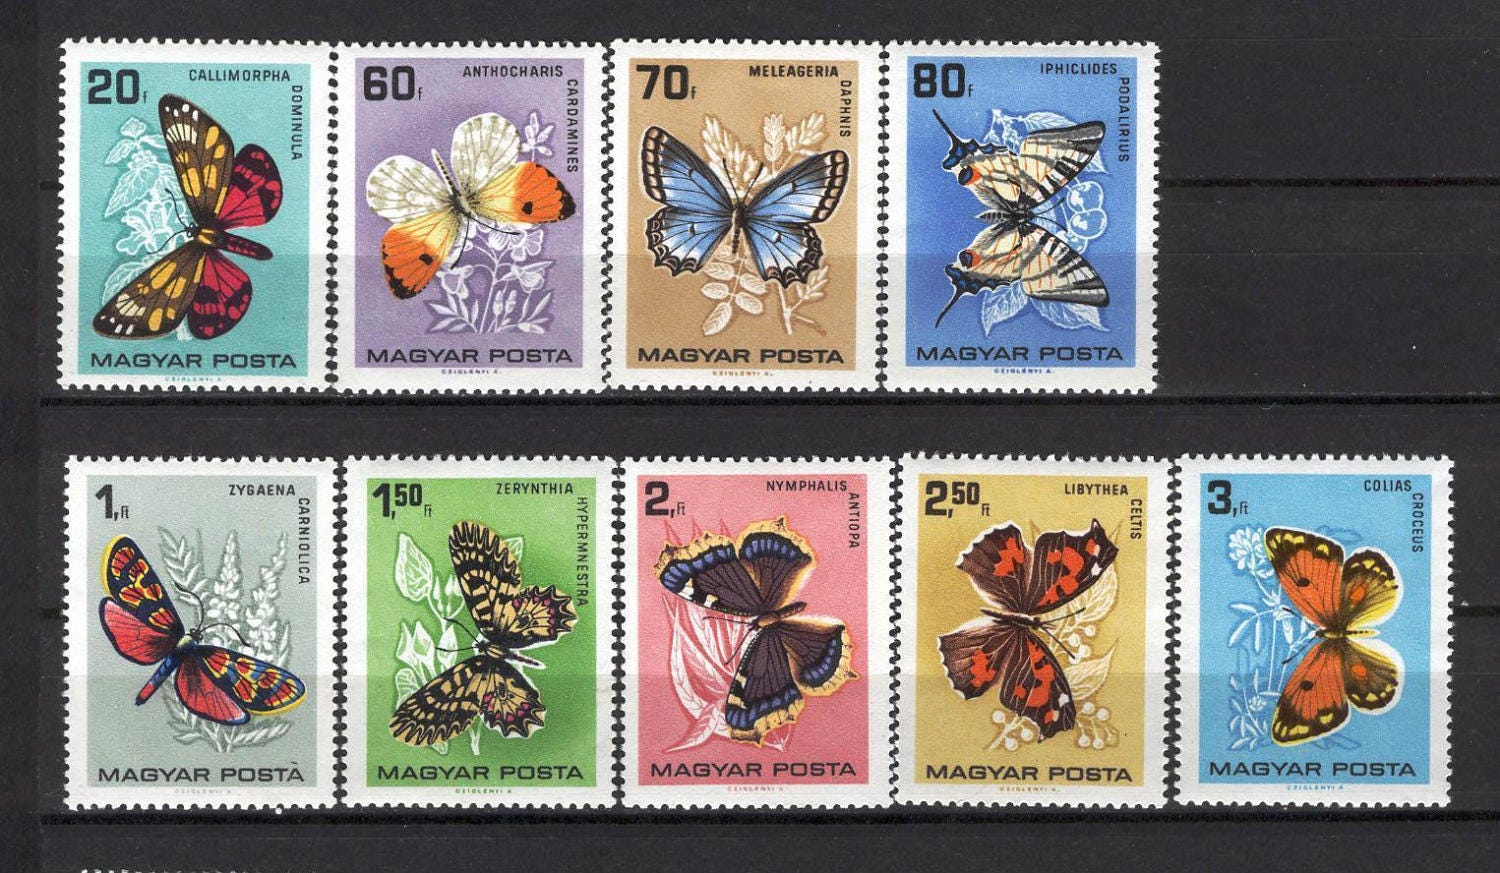 Vintage Butterfly Stamps From Hungary 1966 Postage For